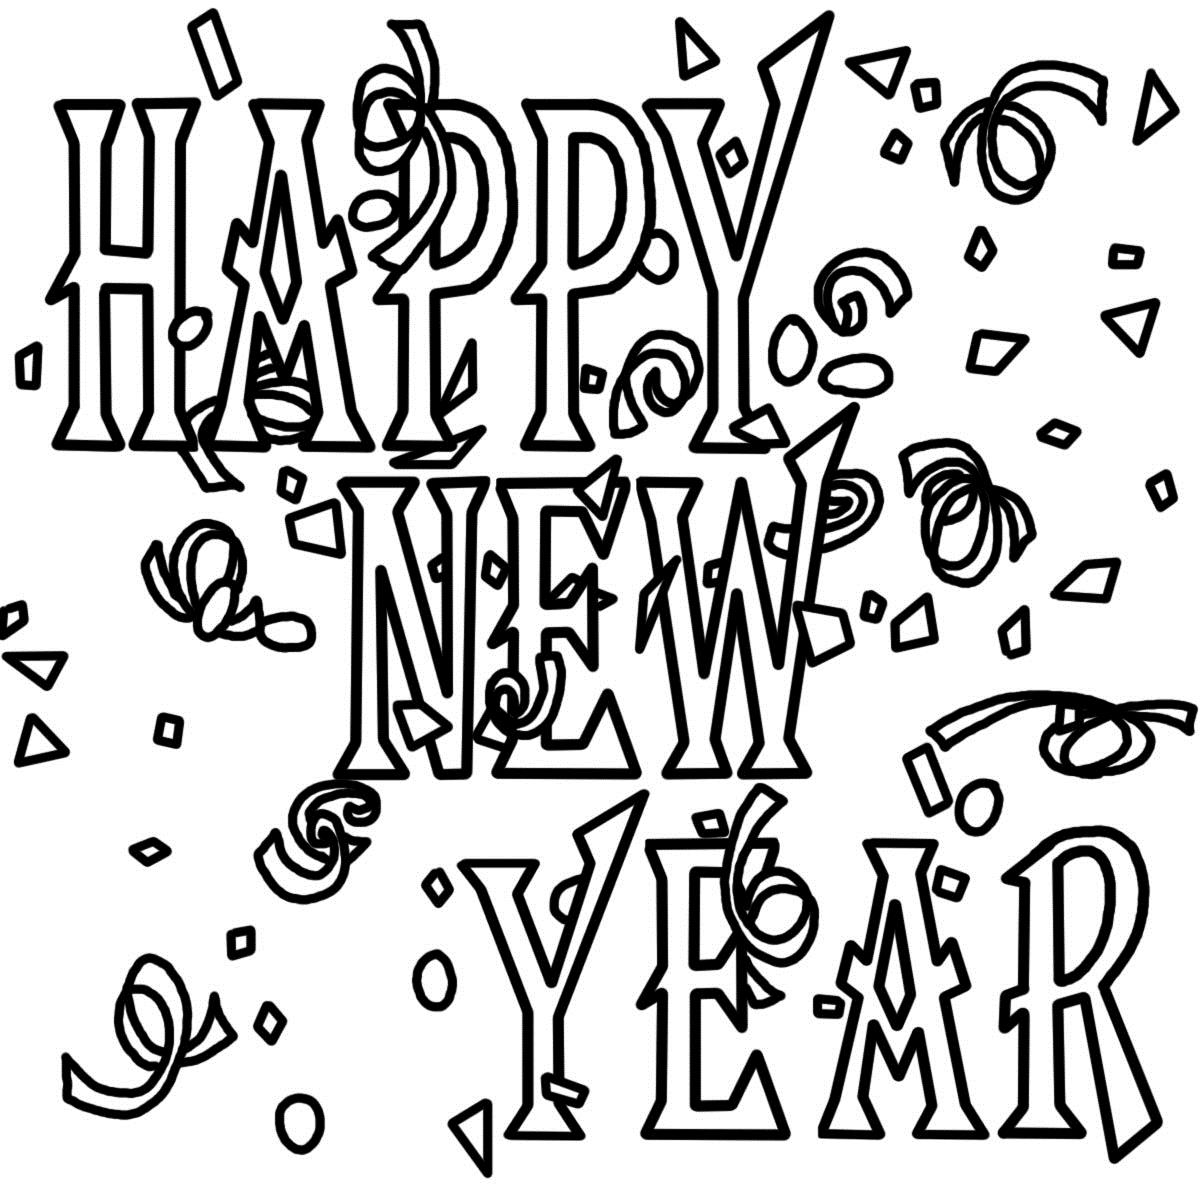 1200x1200 Happy New Year Pencil Drawing Merry Christmas Amp Happy New Year